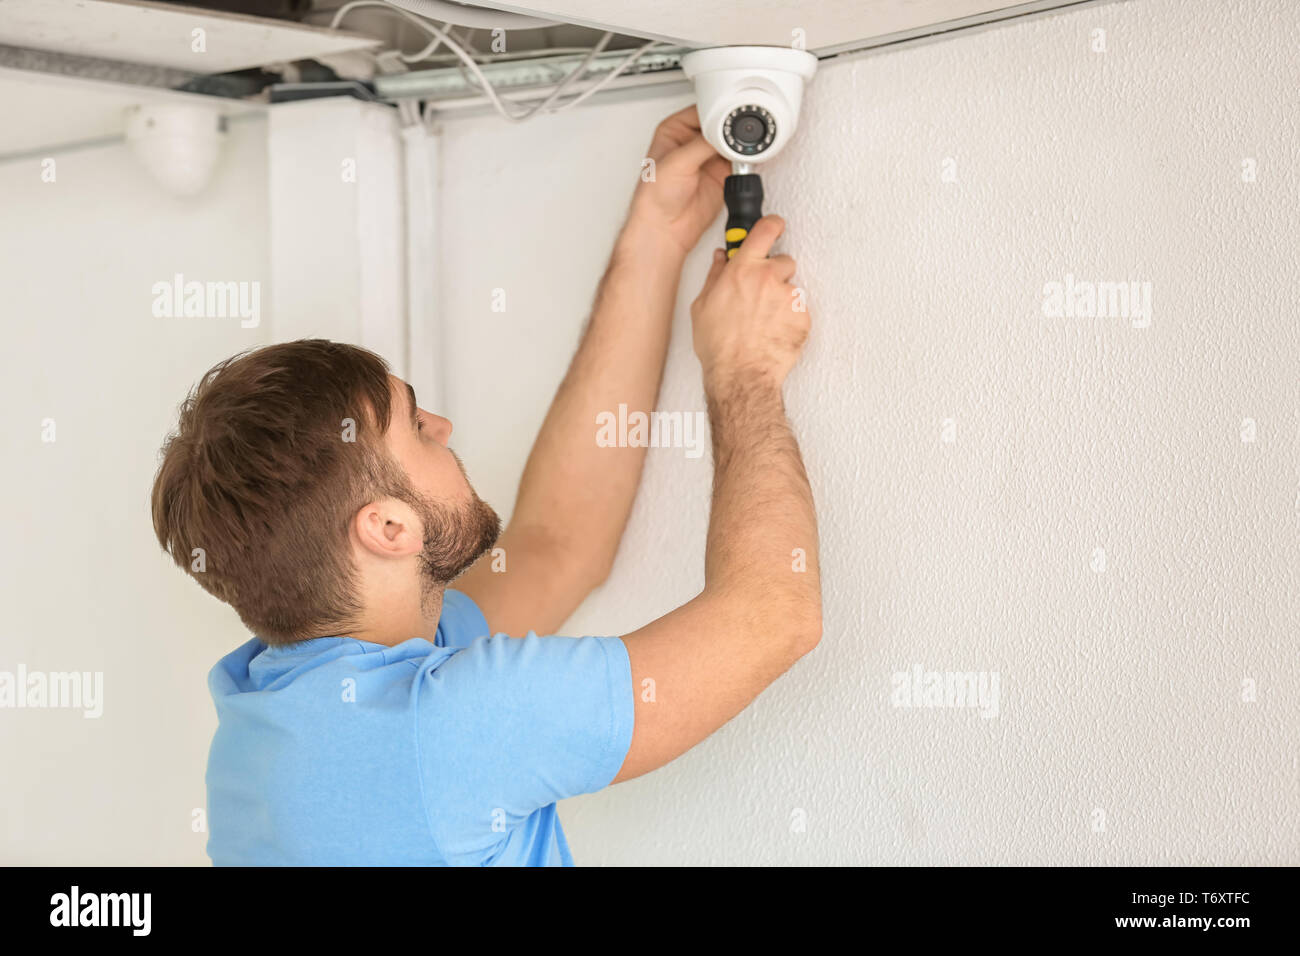 Electrician installing security camera indoors Stock Photo ... on security camera supports, security camera mounting parts, security camera building, security camera fittings, security camera painting, security camera junction boxes, security camera adapters, security camera cables, security camera schematics, security camera bulbs, security camera conduit, security camera mounting base, security camera filter, security camera features, security camera voltage, security camera software, security camera pinout, security camera furniture, security camera components, security camera sensor,